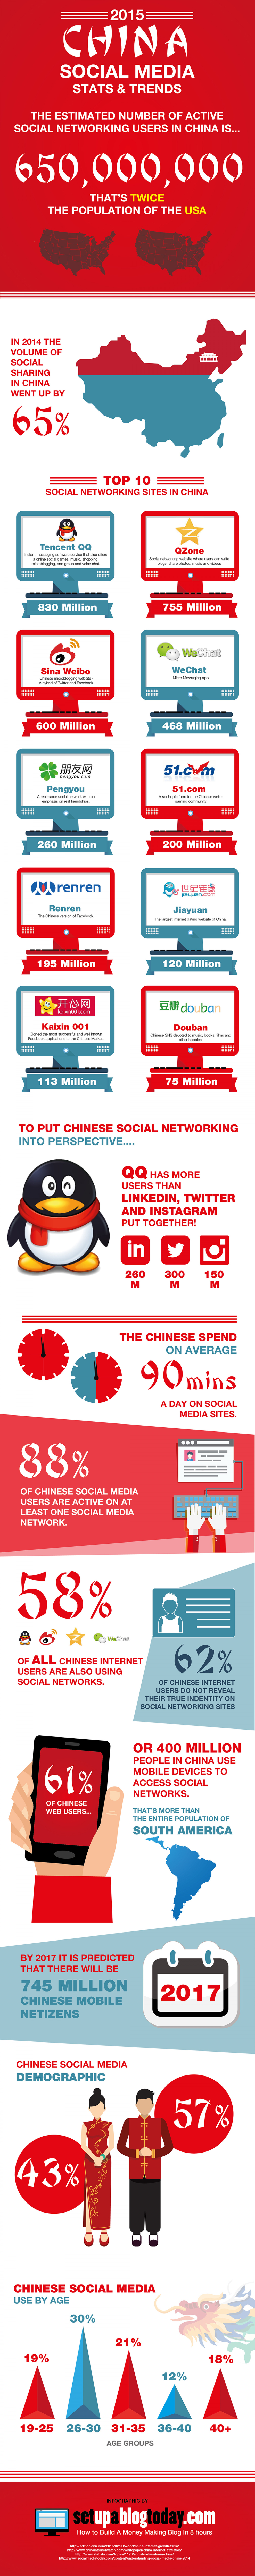 Social Media Trends in China for 2015 Infographic